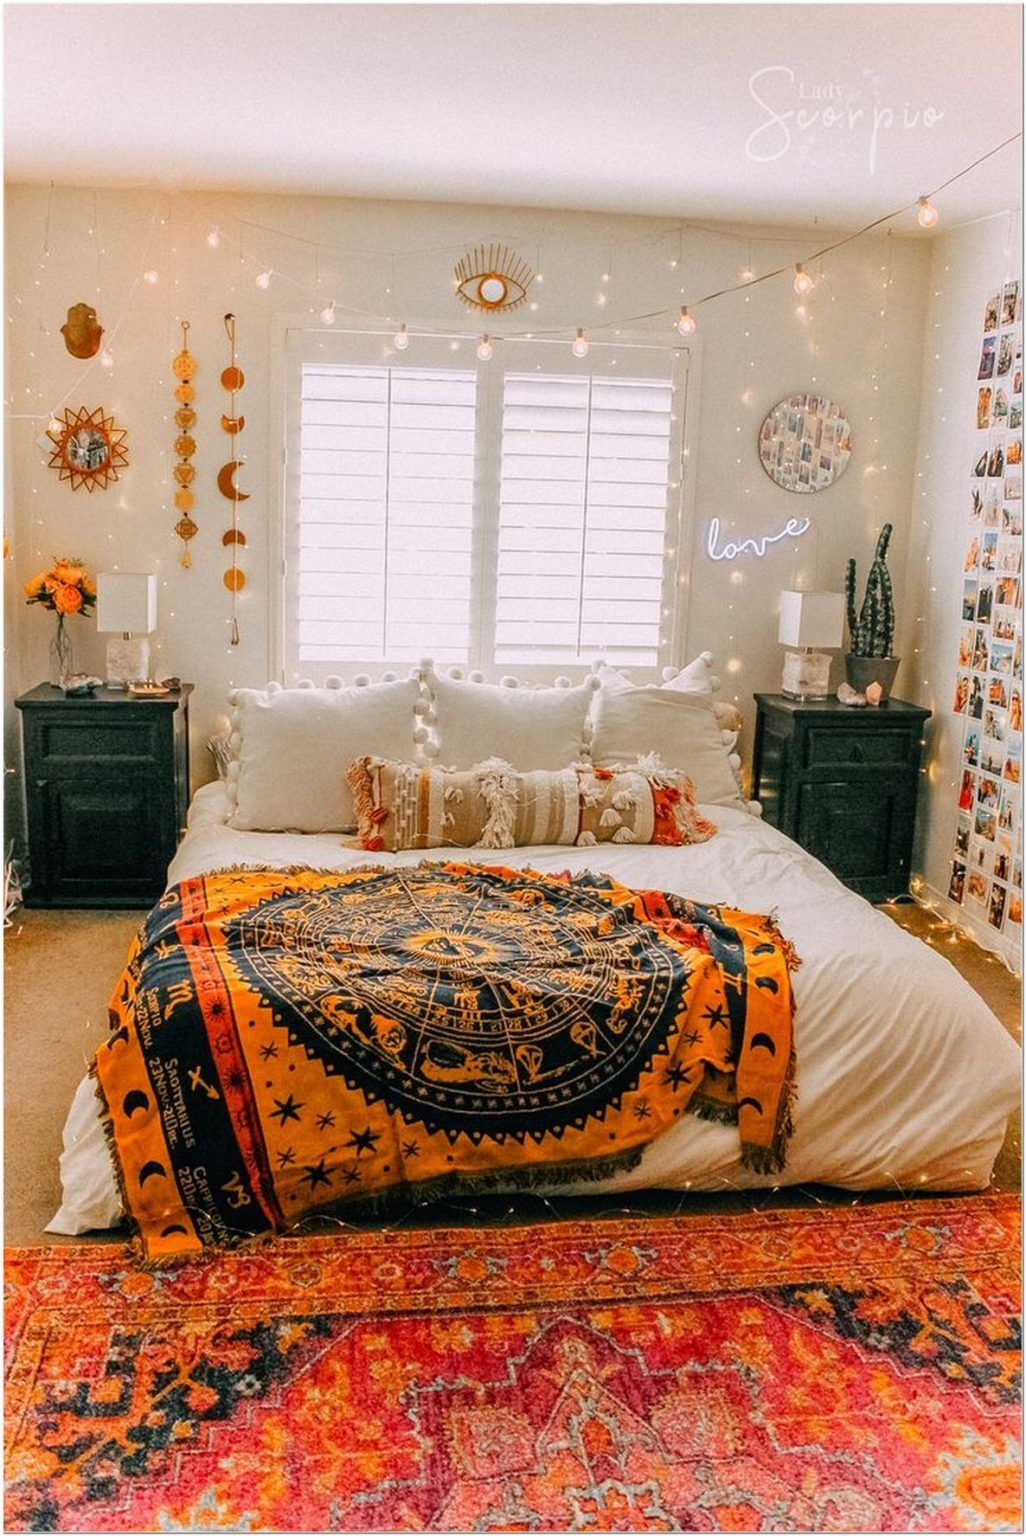 78+ modern bohemian bedroom decor ideas 1 in 2020 (With ... on Modern Bohemian Bedroom Decor  id=16083